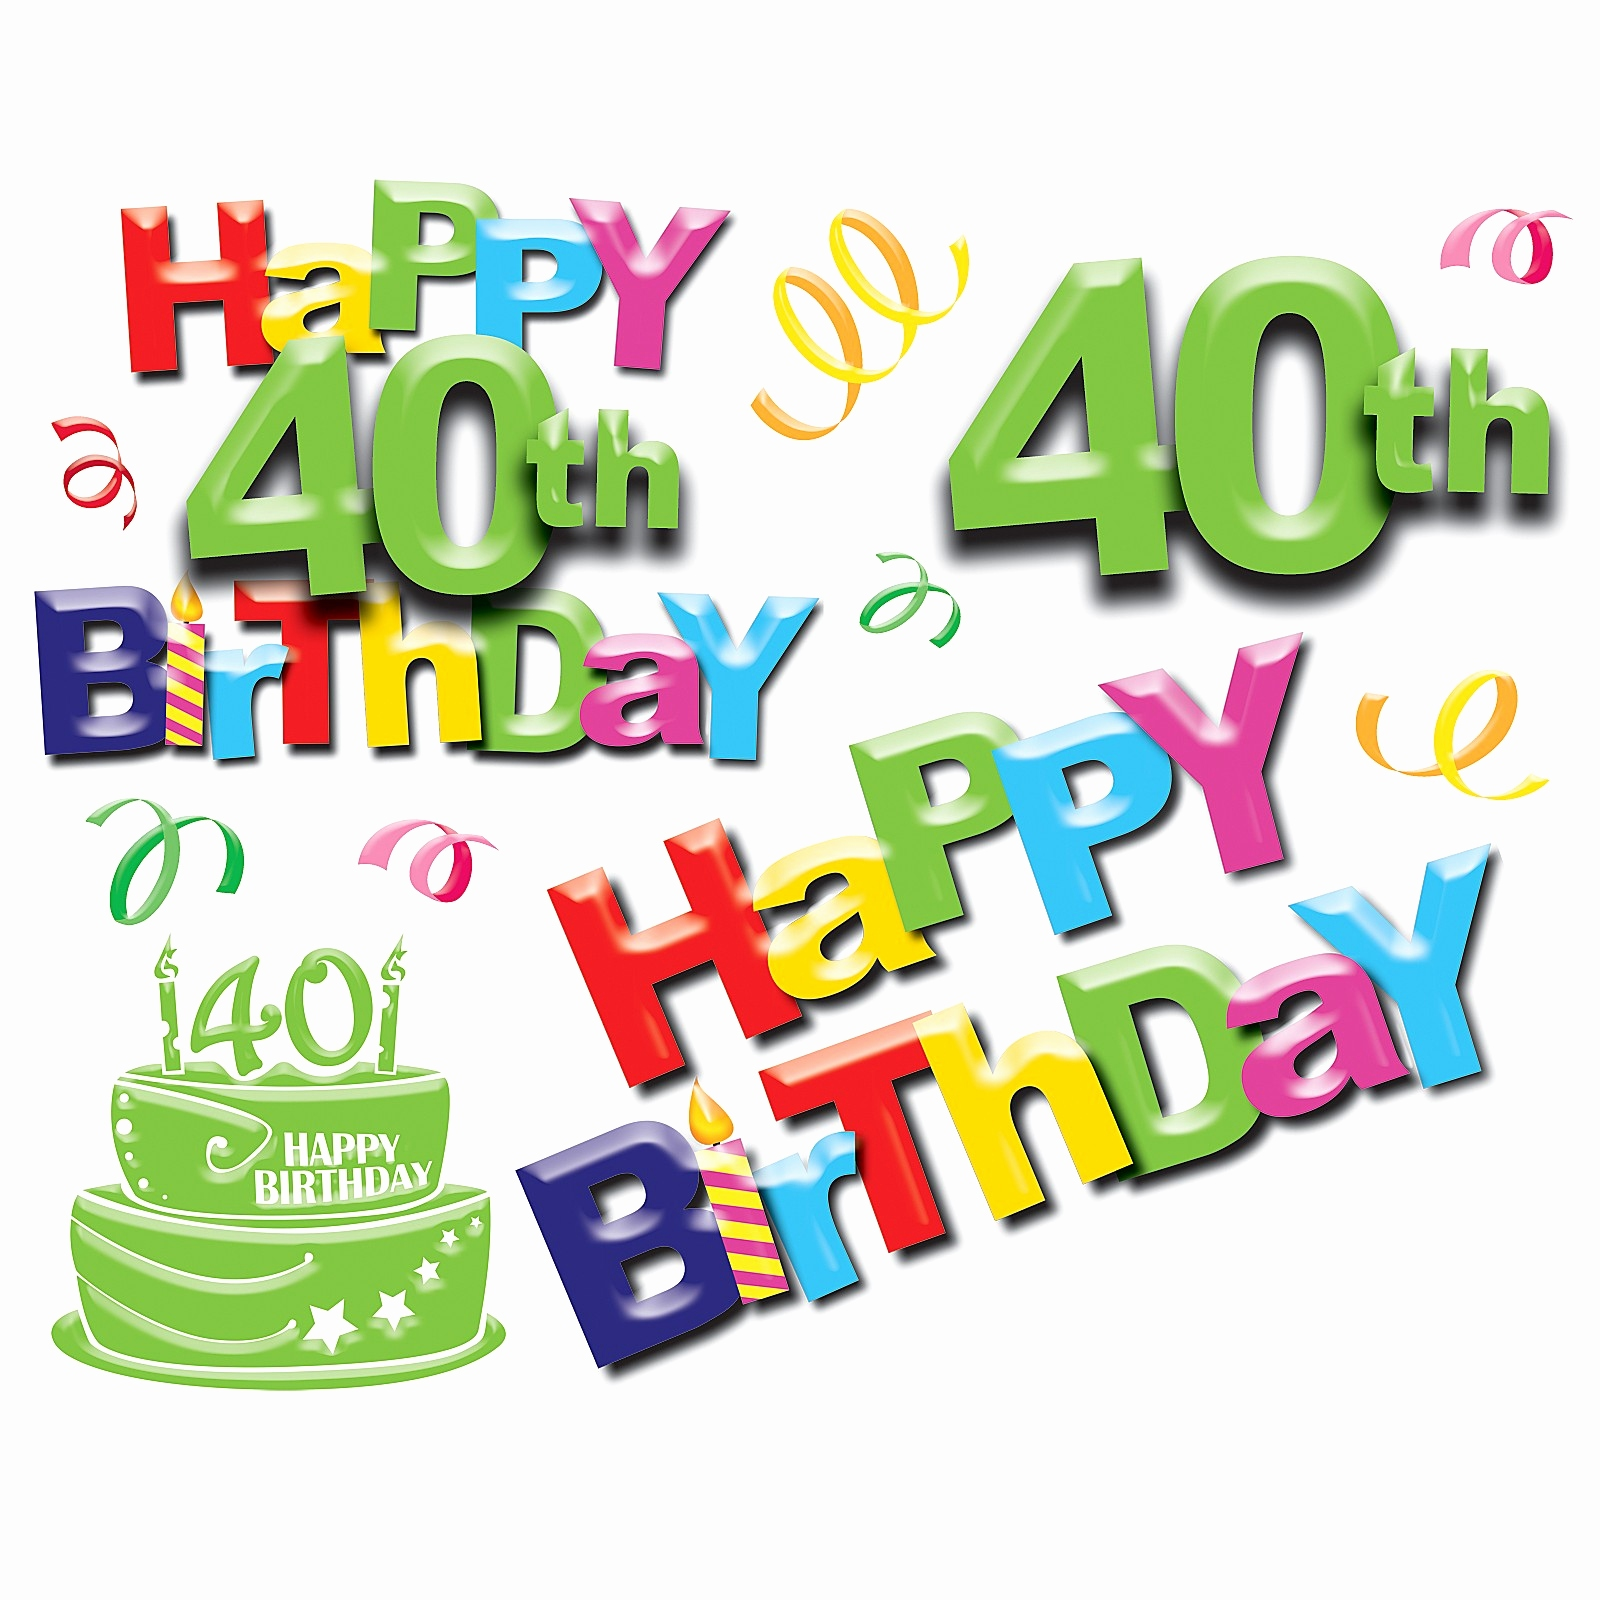 50th birthday card messages ; 50th-birthday-card-messages-new-happy-40th-birthday-1-just-other-stuff-pinterest-of-50th-birthday-card-messages